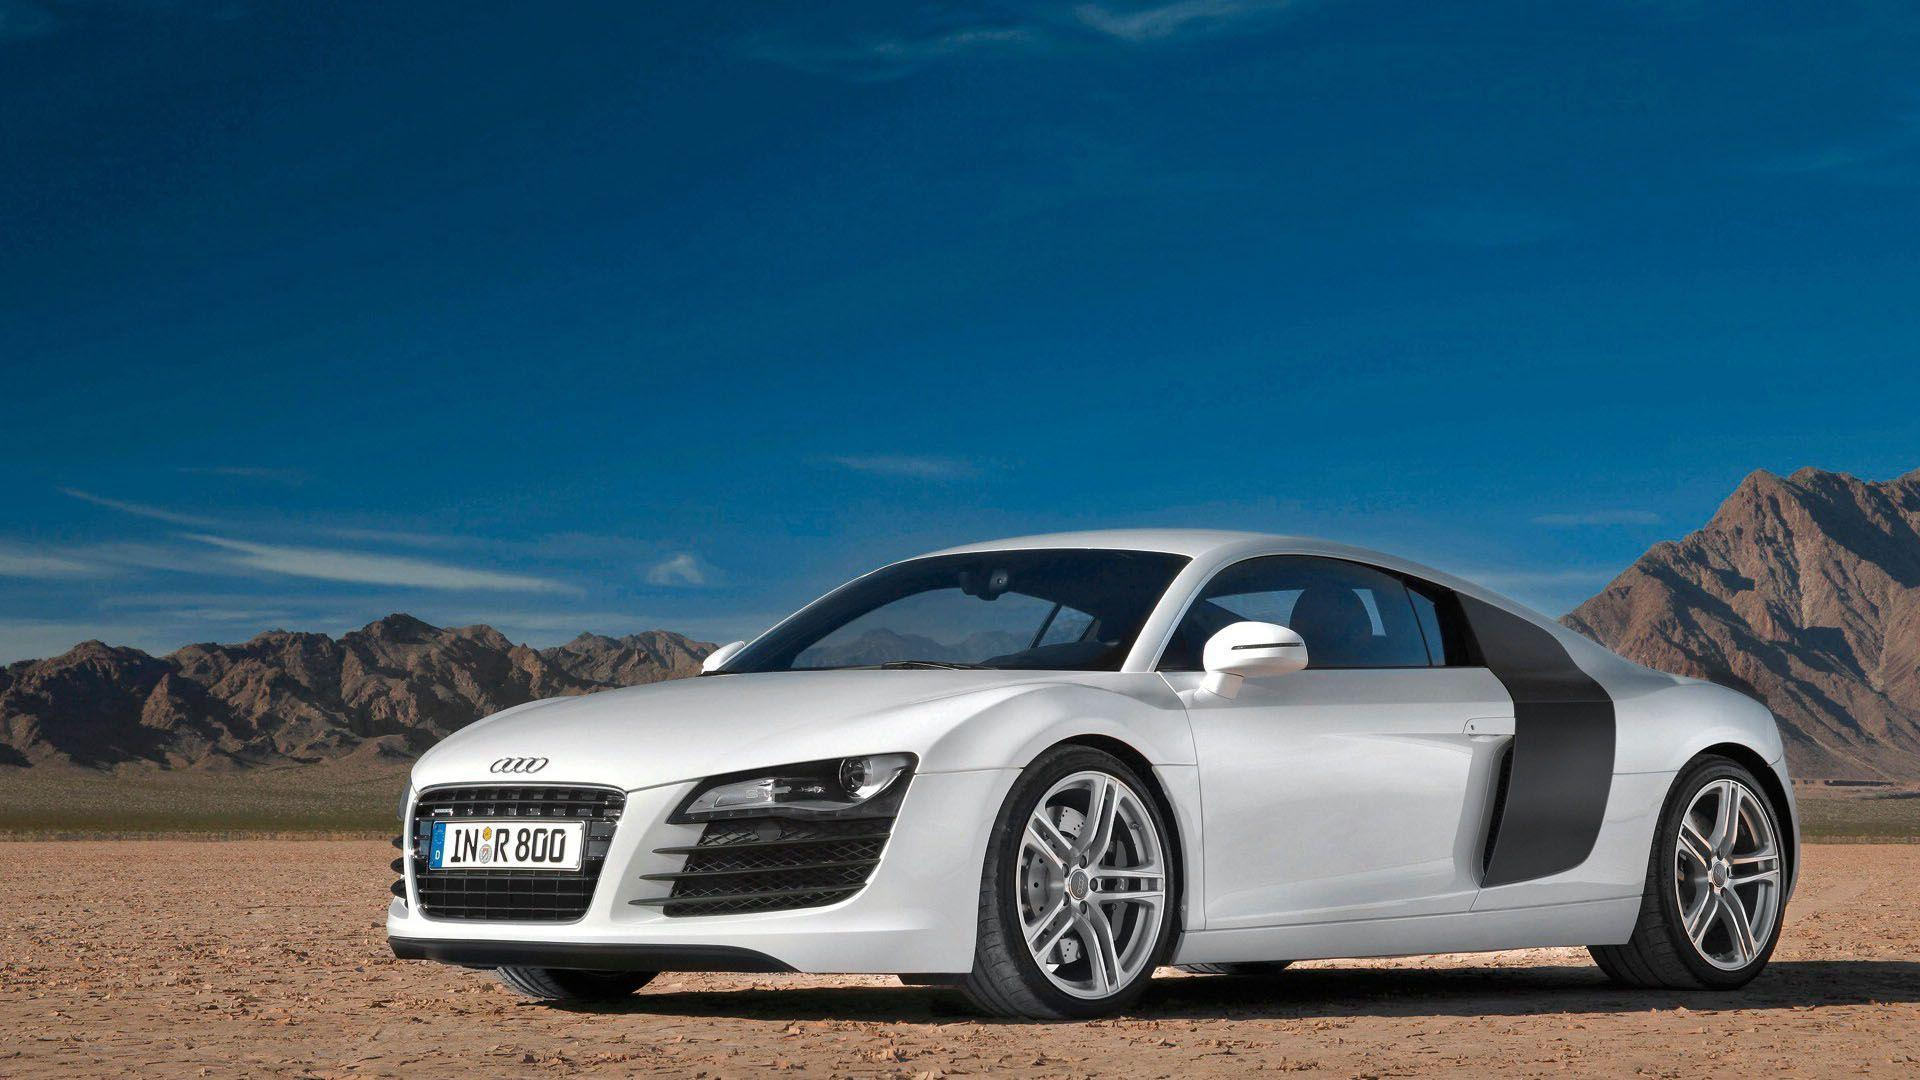 Blue Audi R8 Wallpapers Top Free Blue Audi R8 Backgrounds